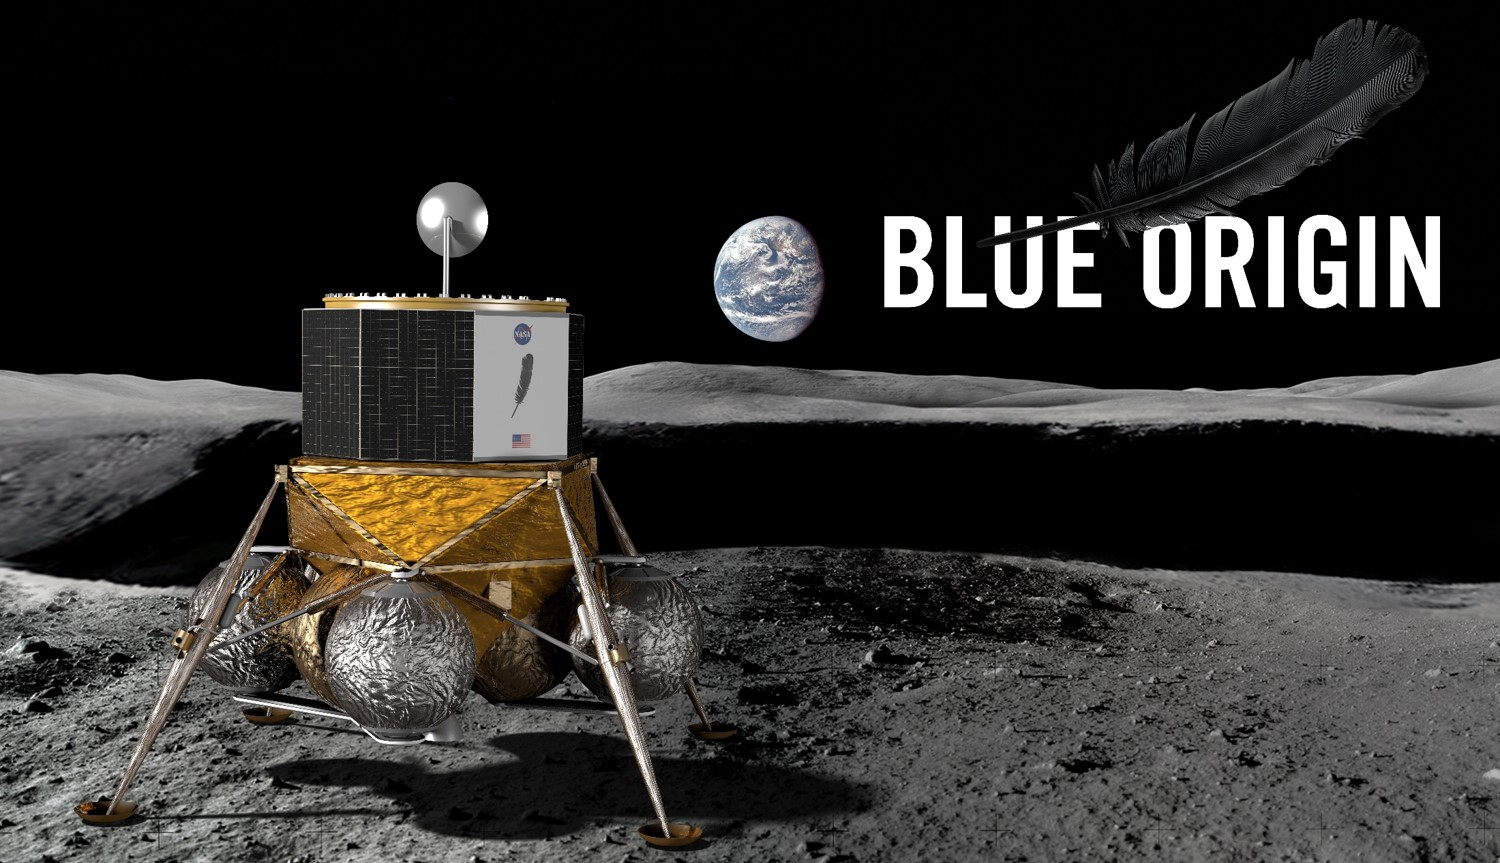 Jeff Bezos talks about his plans to colonize the moon